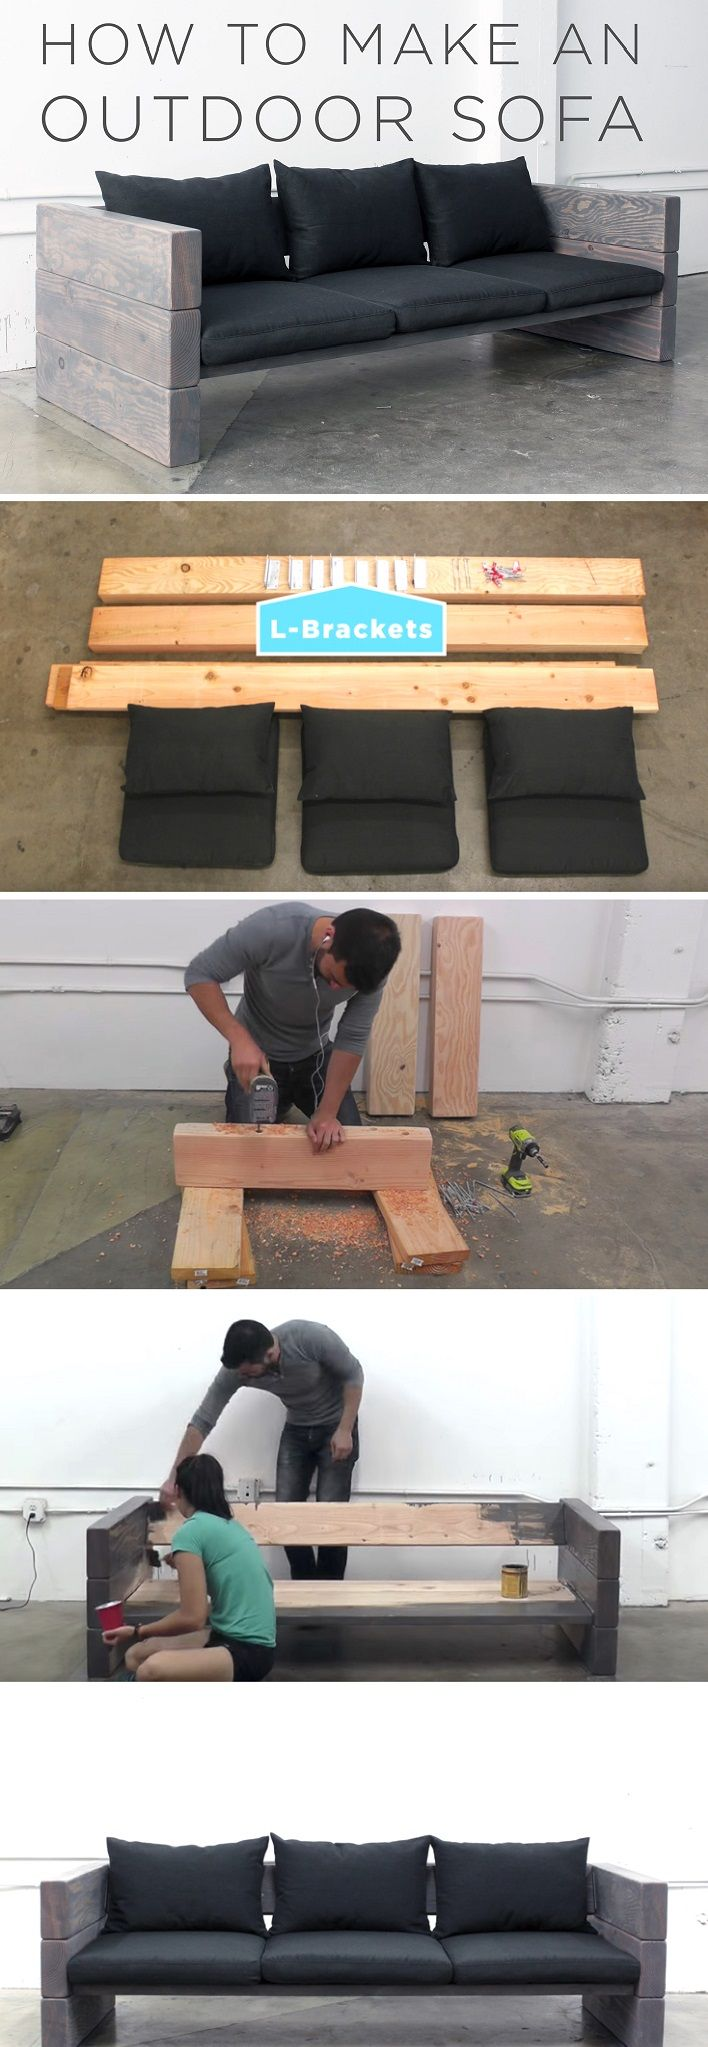 Do you want to learn how to build an amazing diy outdoor sofa that your neighbors and friends will beg you to know your secrets check this out...